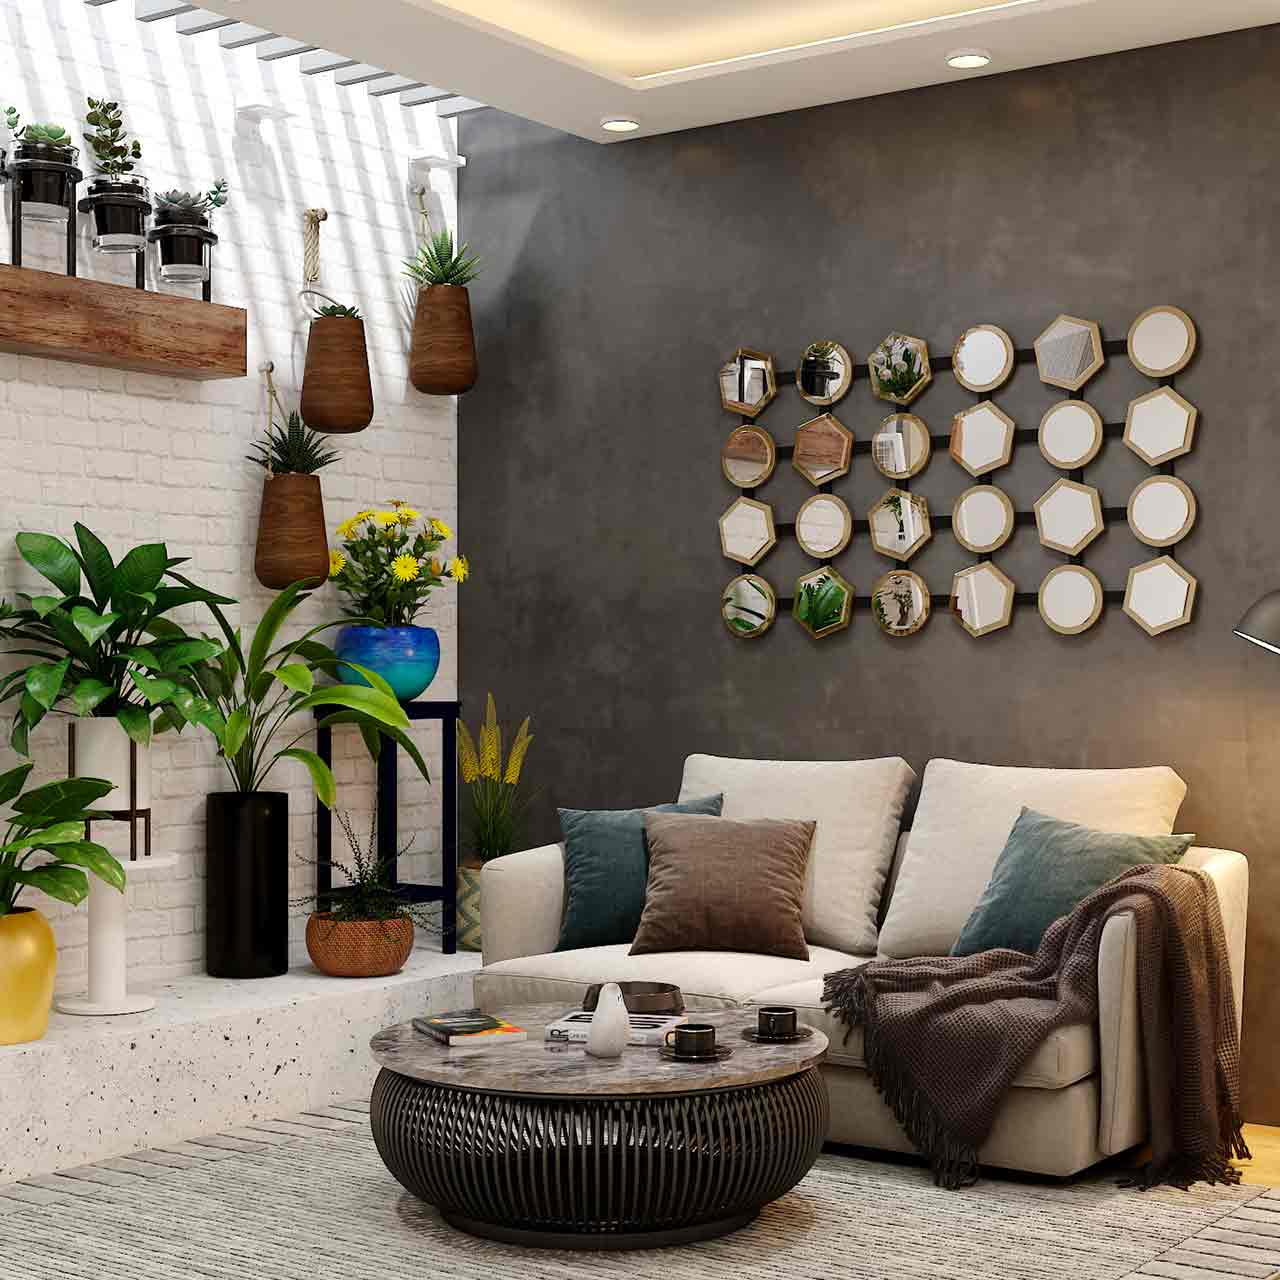 Shabby-chic style living room design go for neutral colours and add pops of bright hues wherever possible